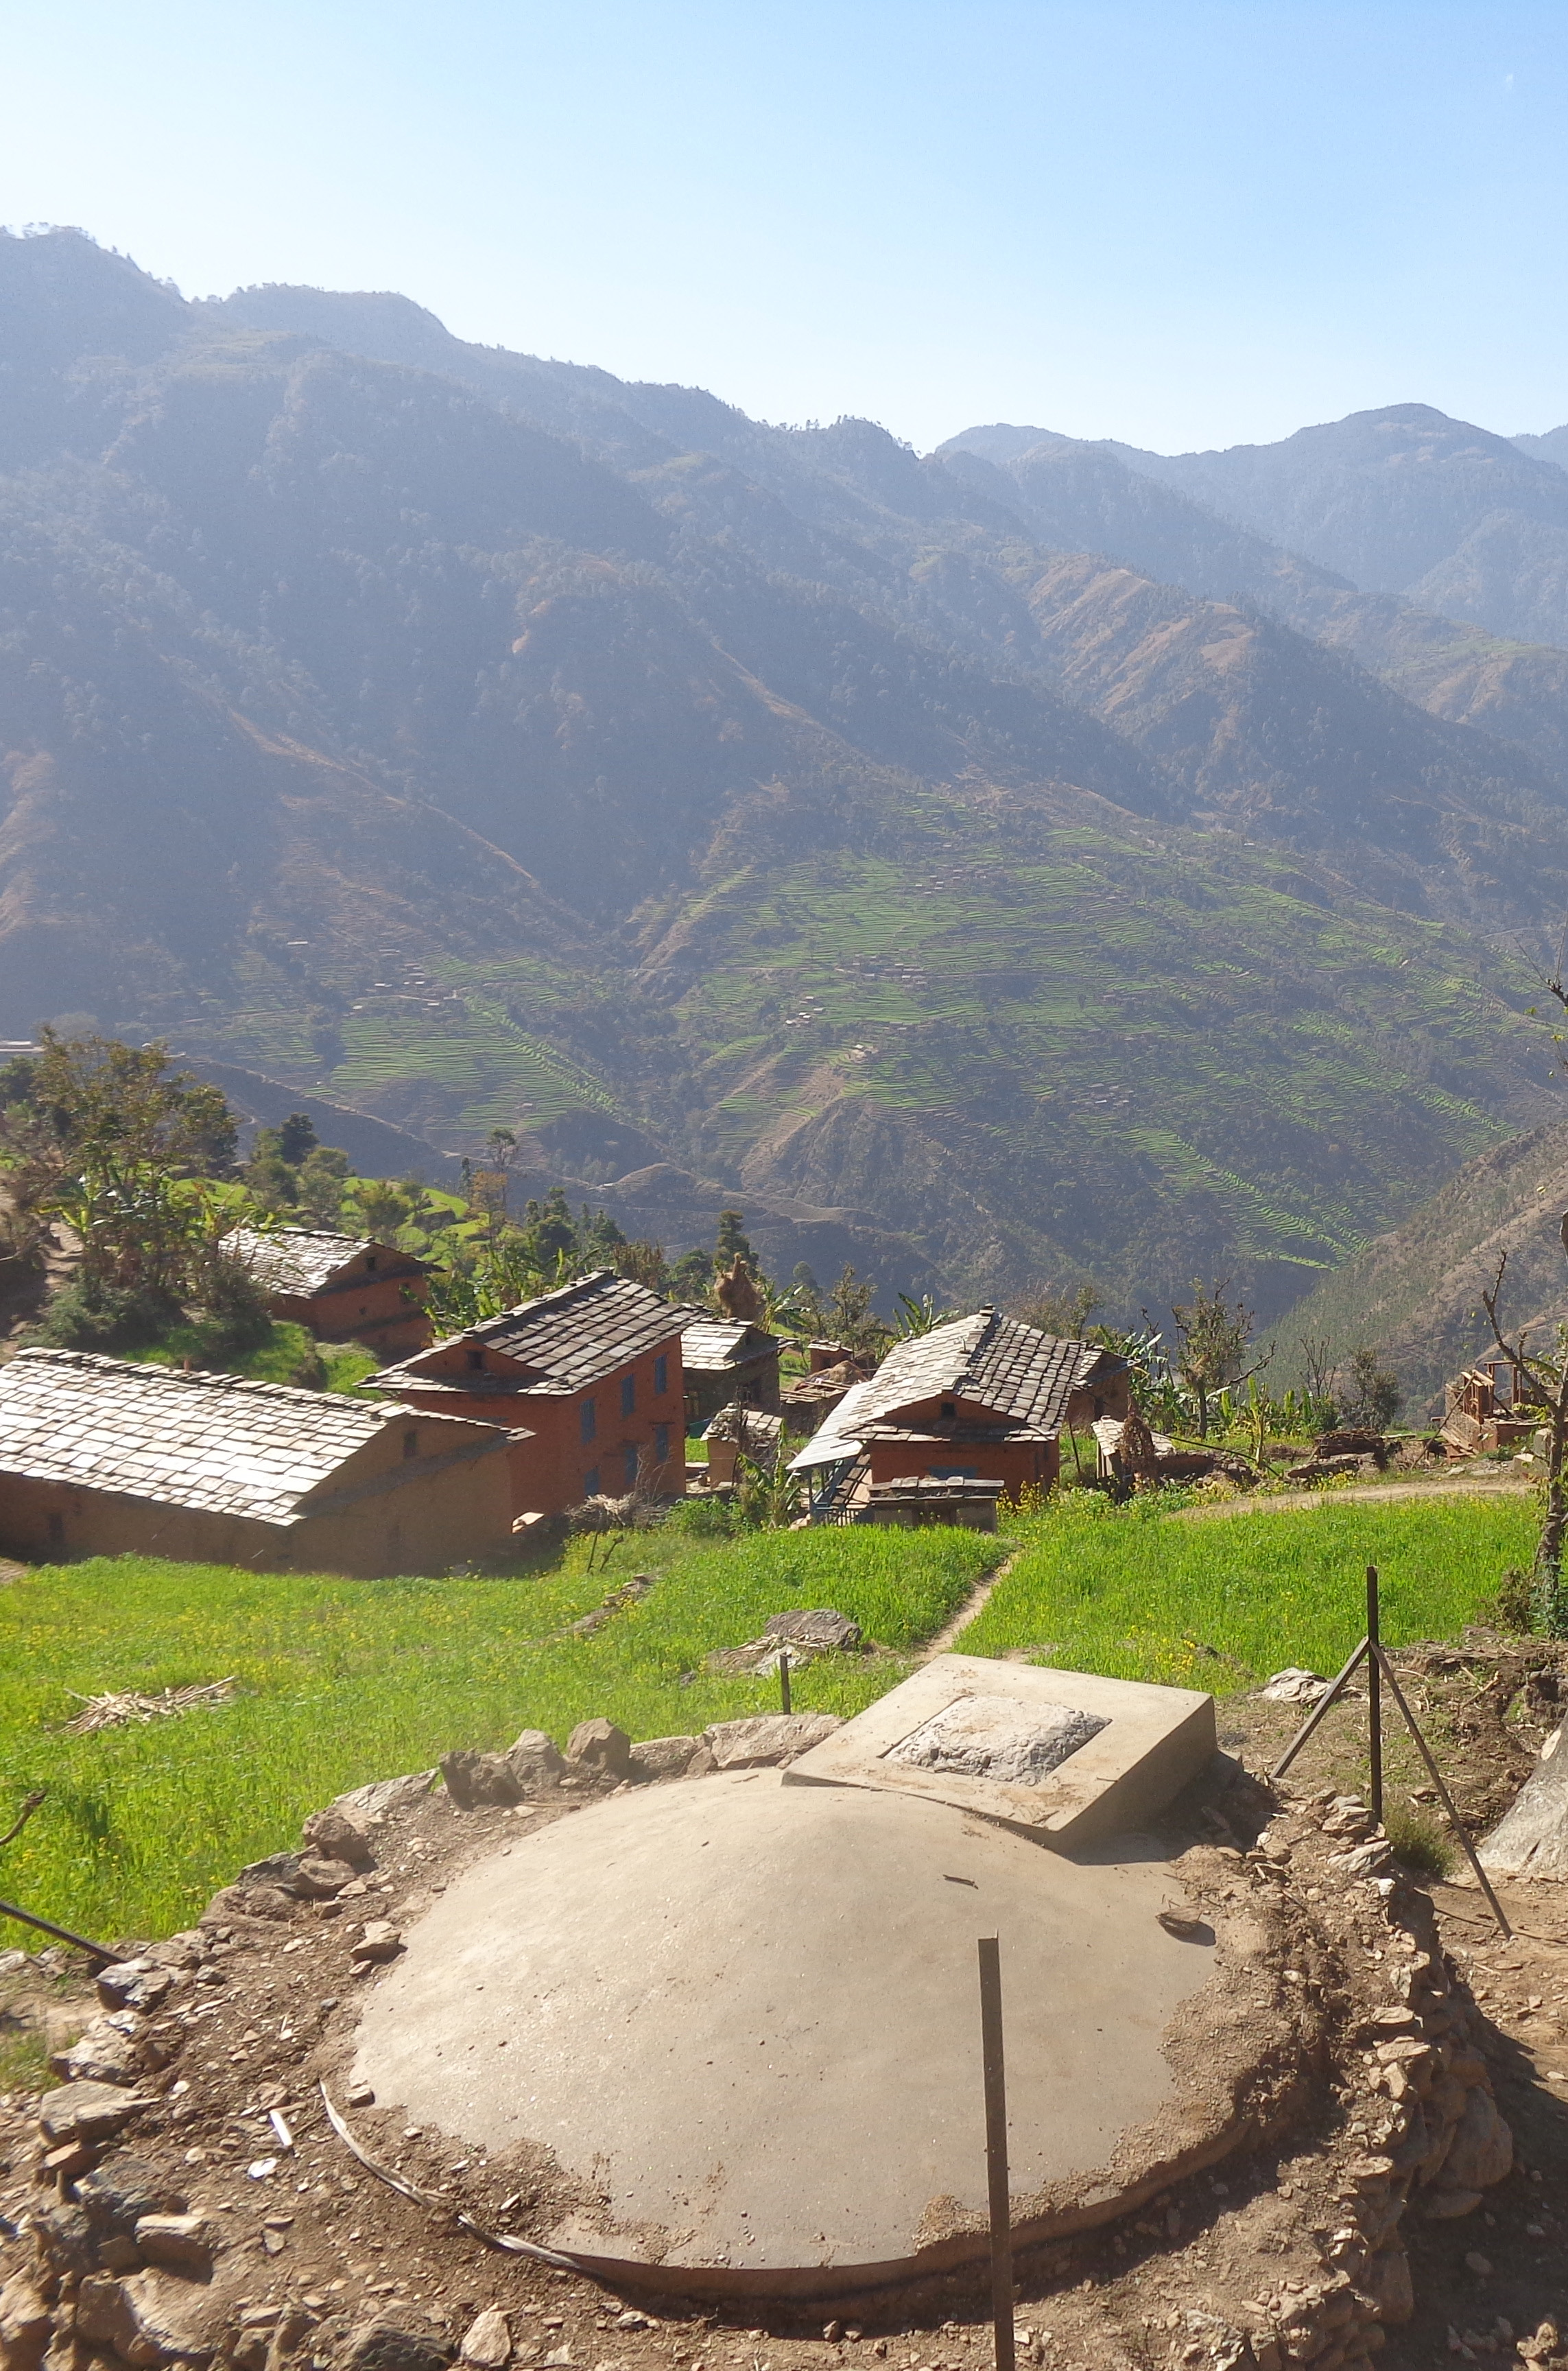 image du village du district de jajarkot au Népal